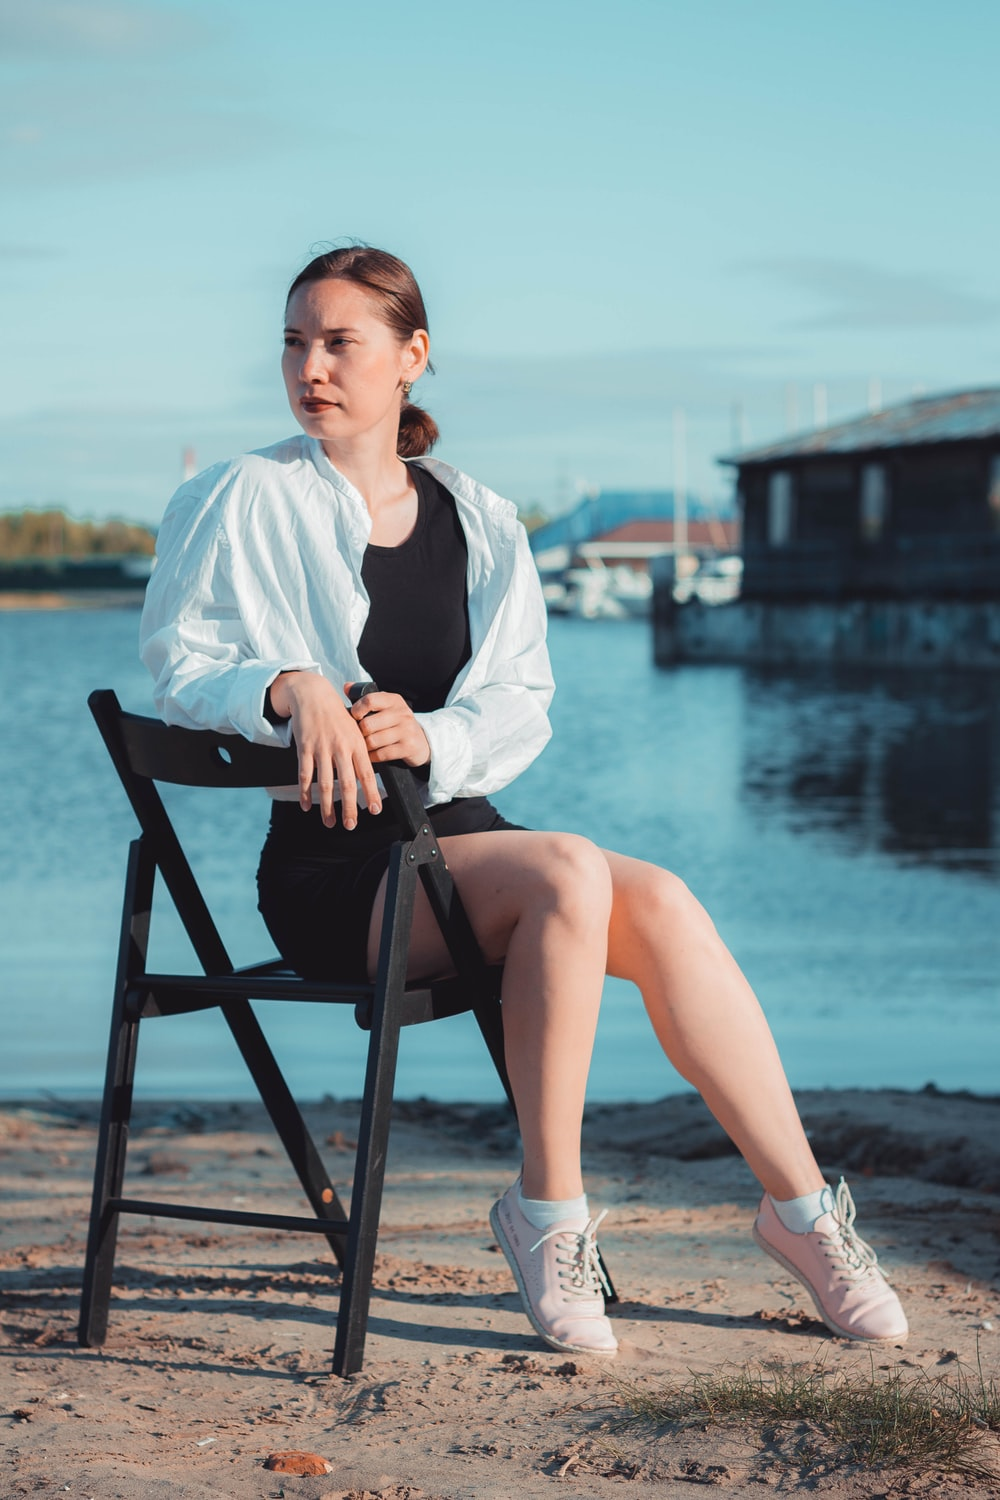 woman sitting on chair near water